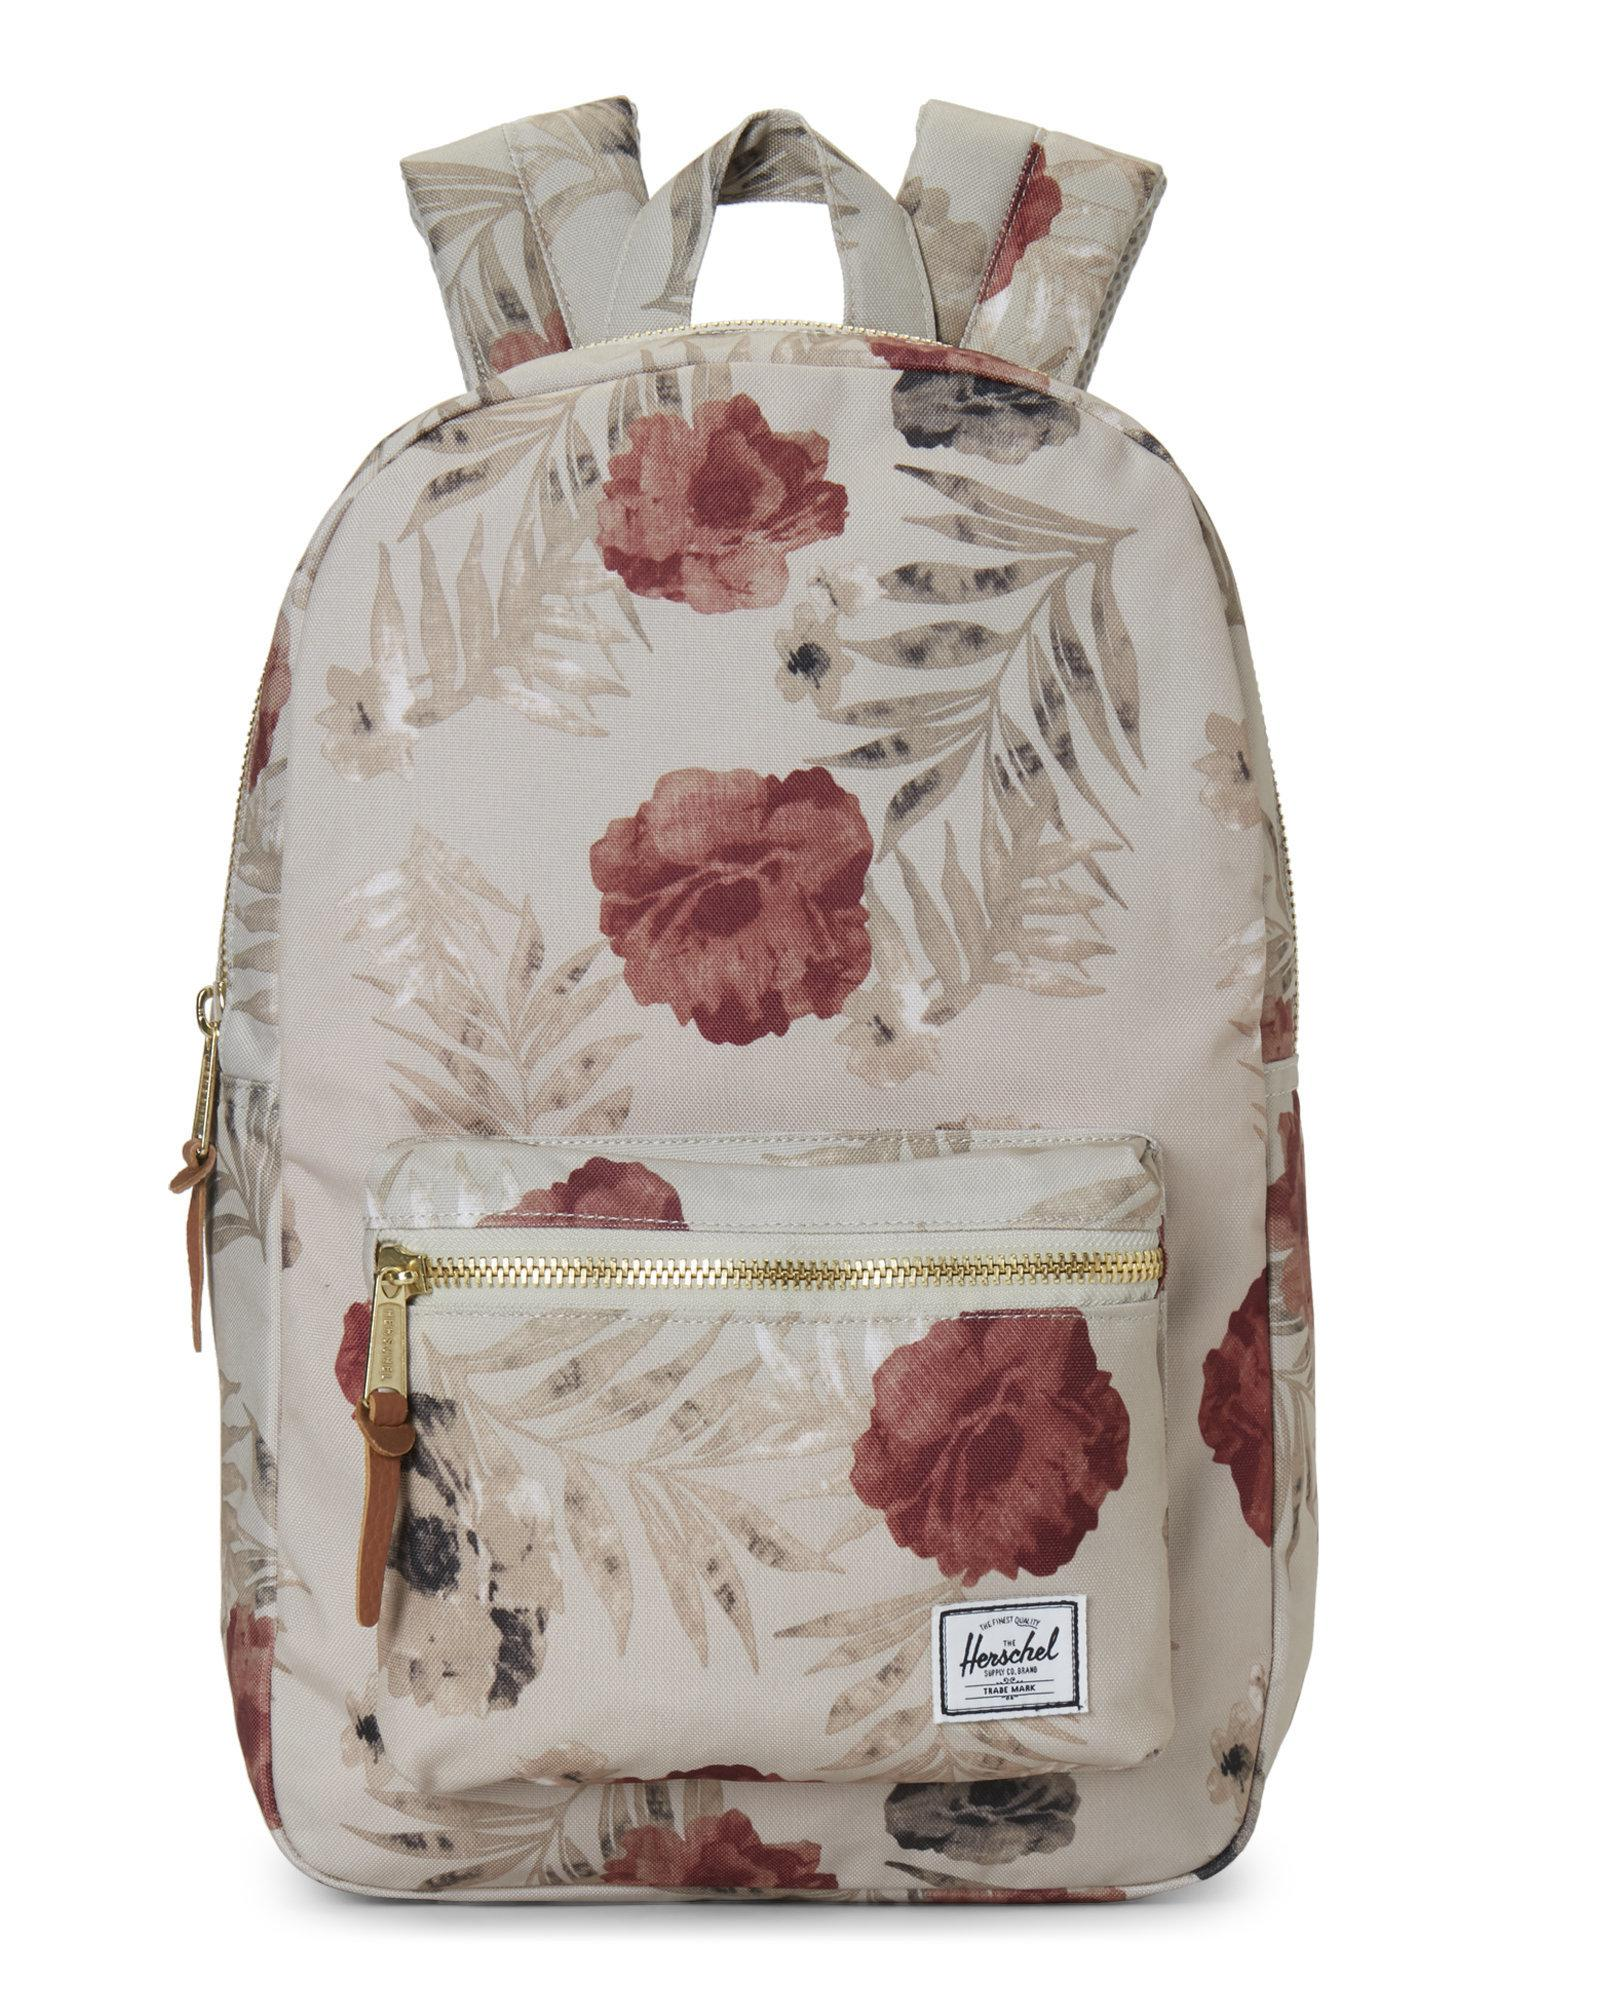 32a2db12ecc Lyst - Herschel Supply Co. Settlement Pelican Floral Tan Backpack in Red